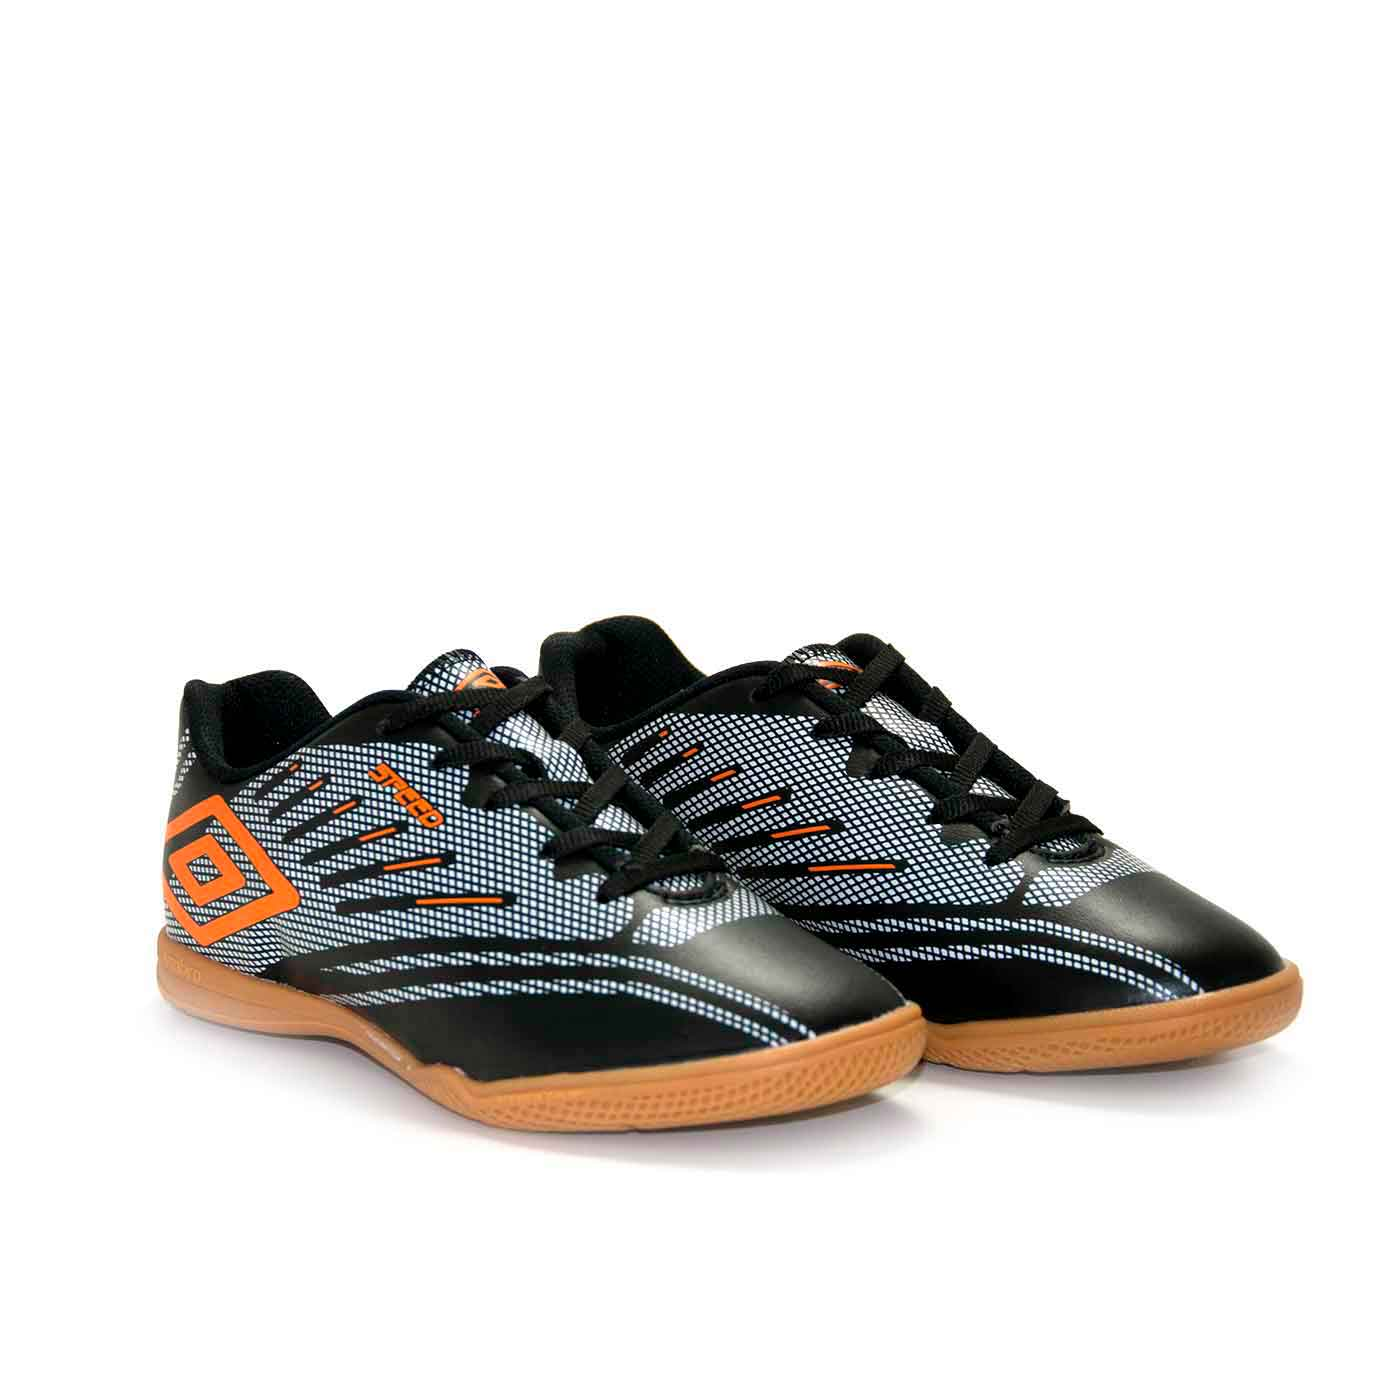 CHUTEIRA UMBRO INDOR SPEED IV J - OF82053